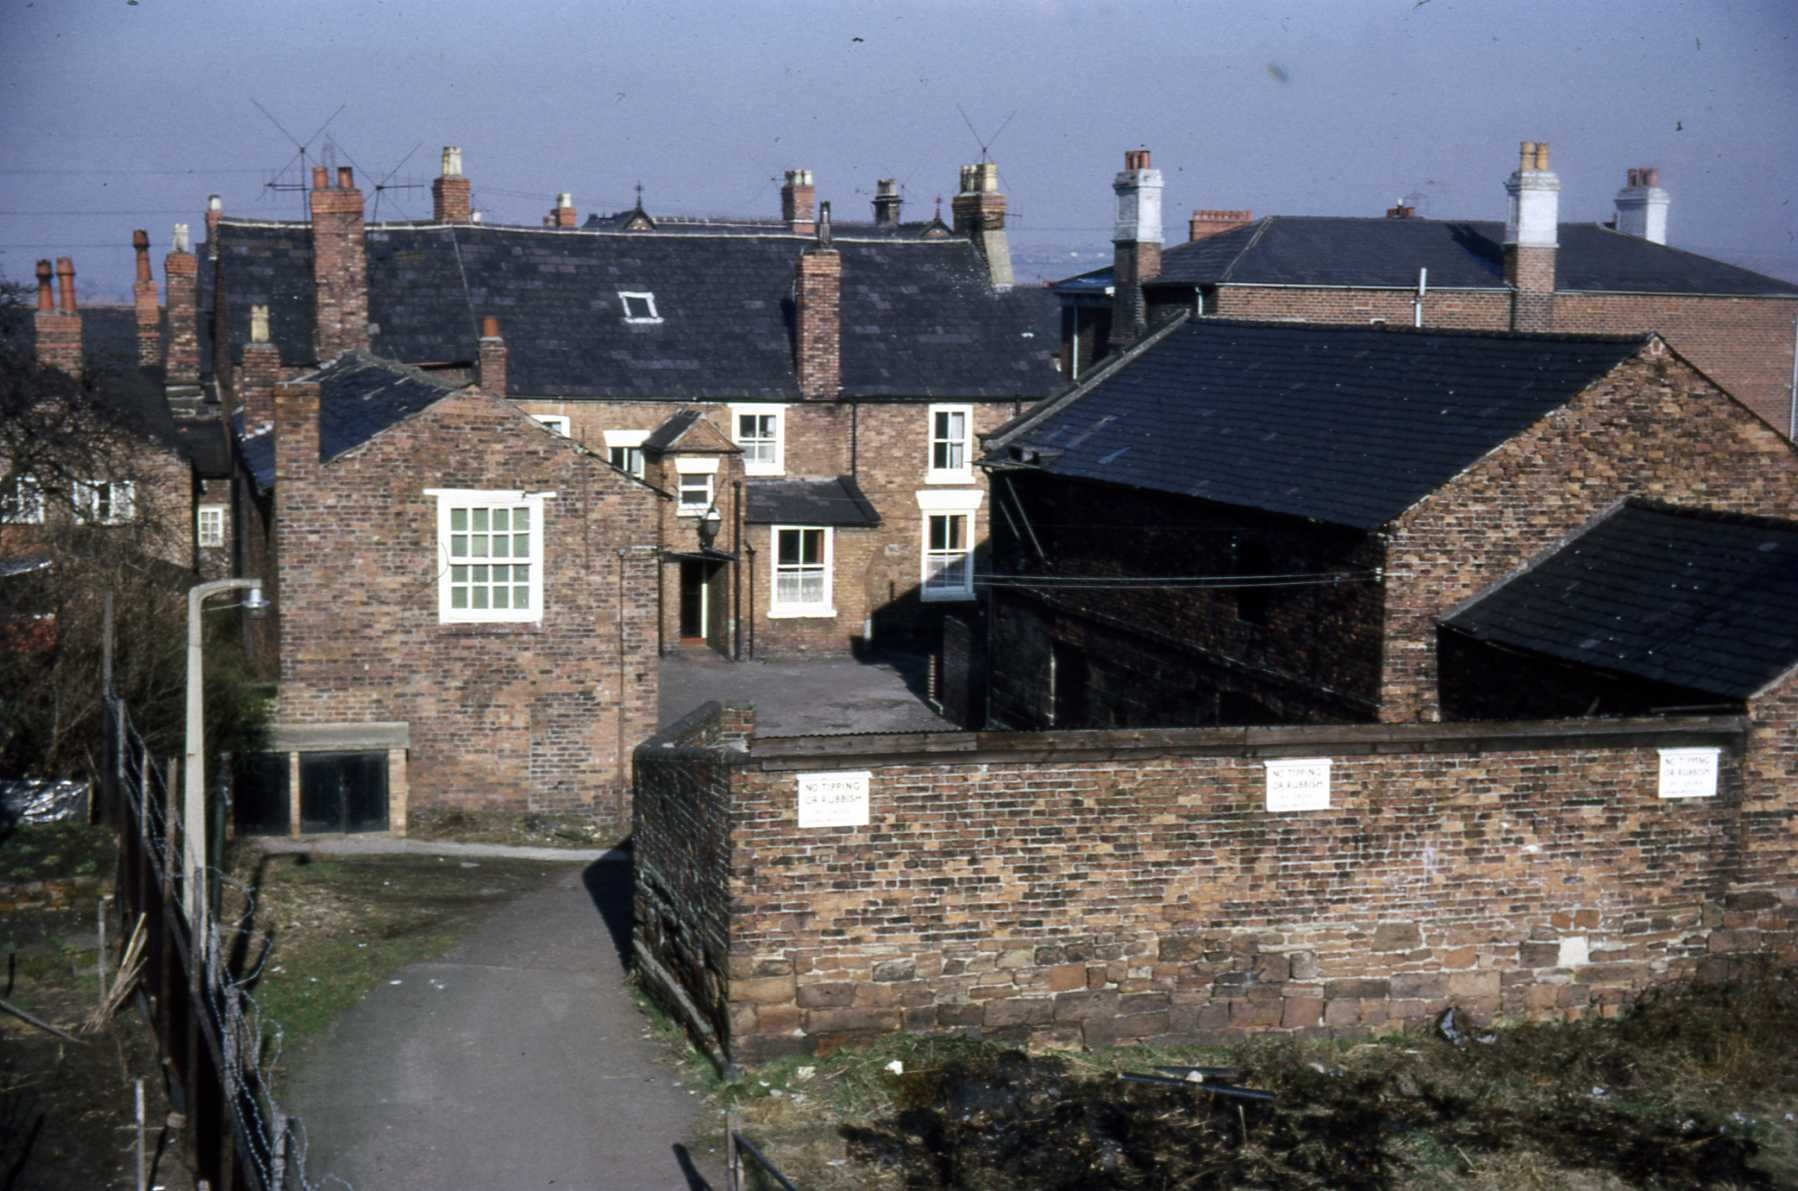 D4 050 Queens Head Yard and buildings 1968.jpg